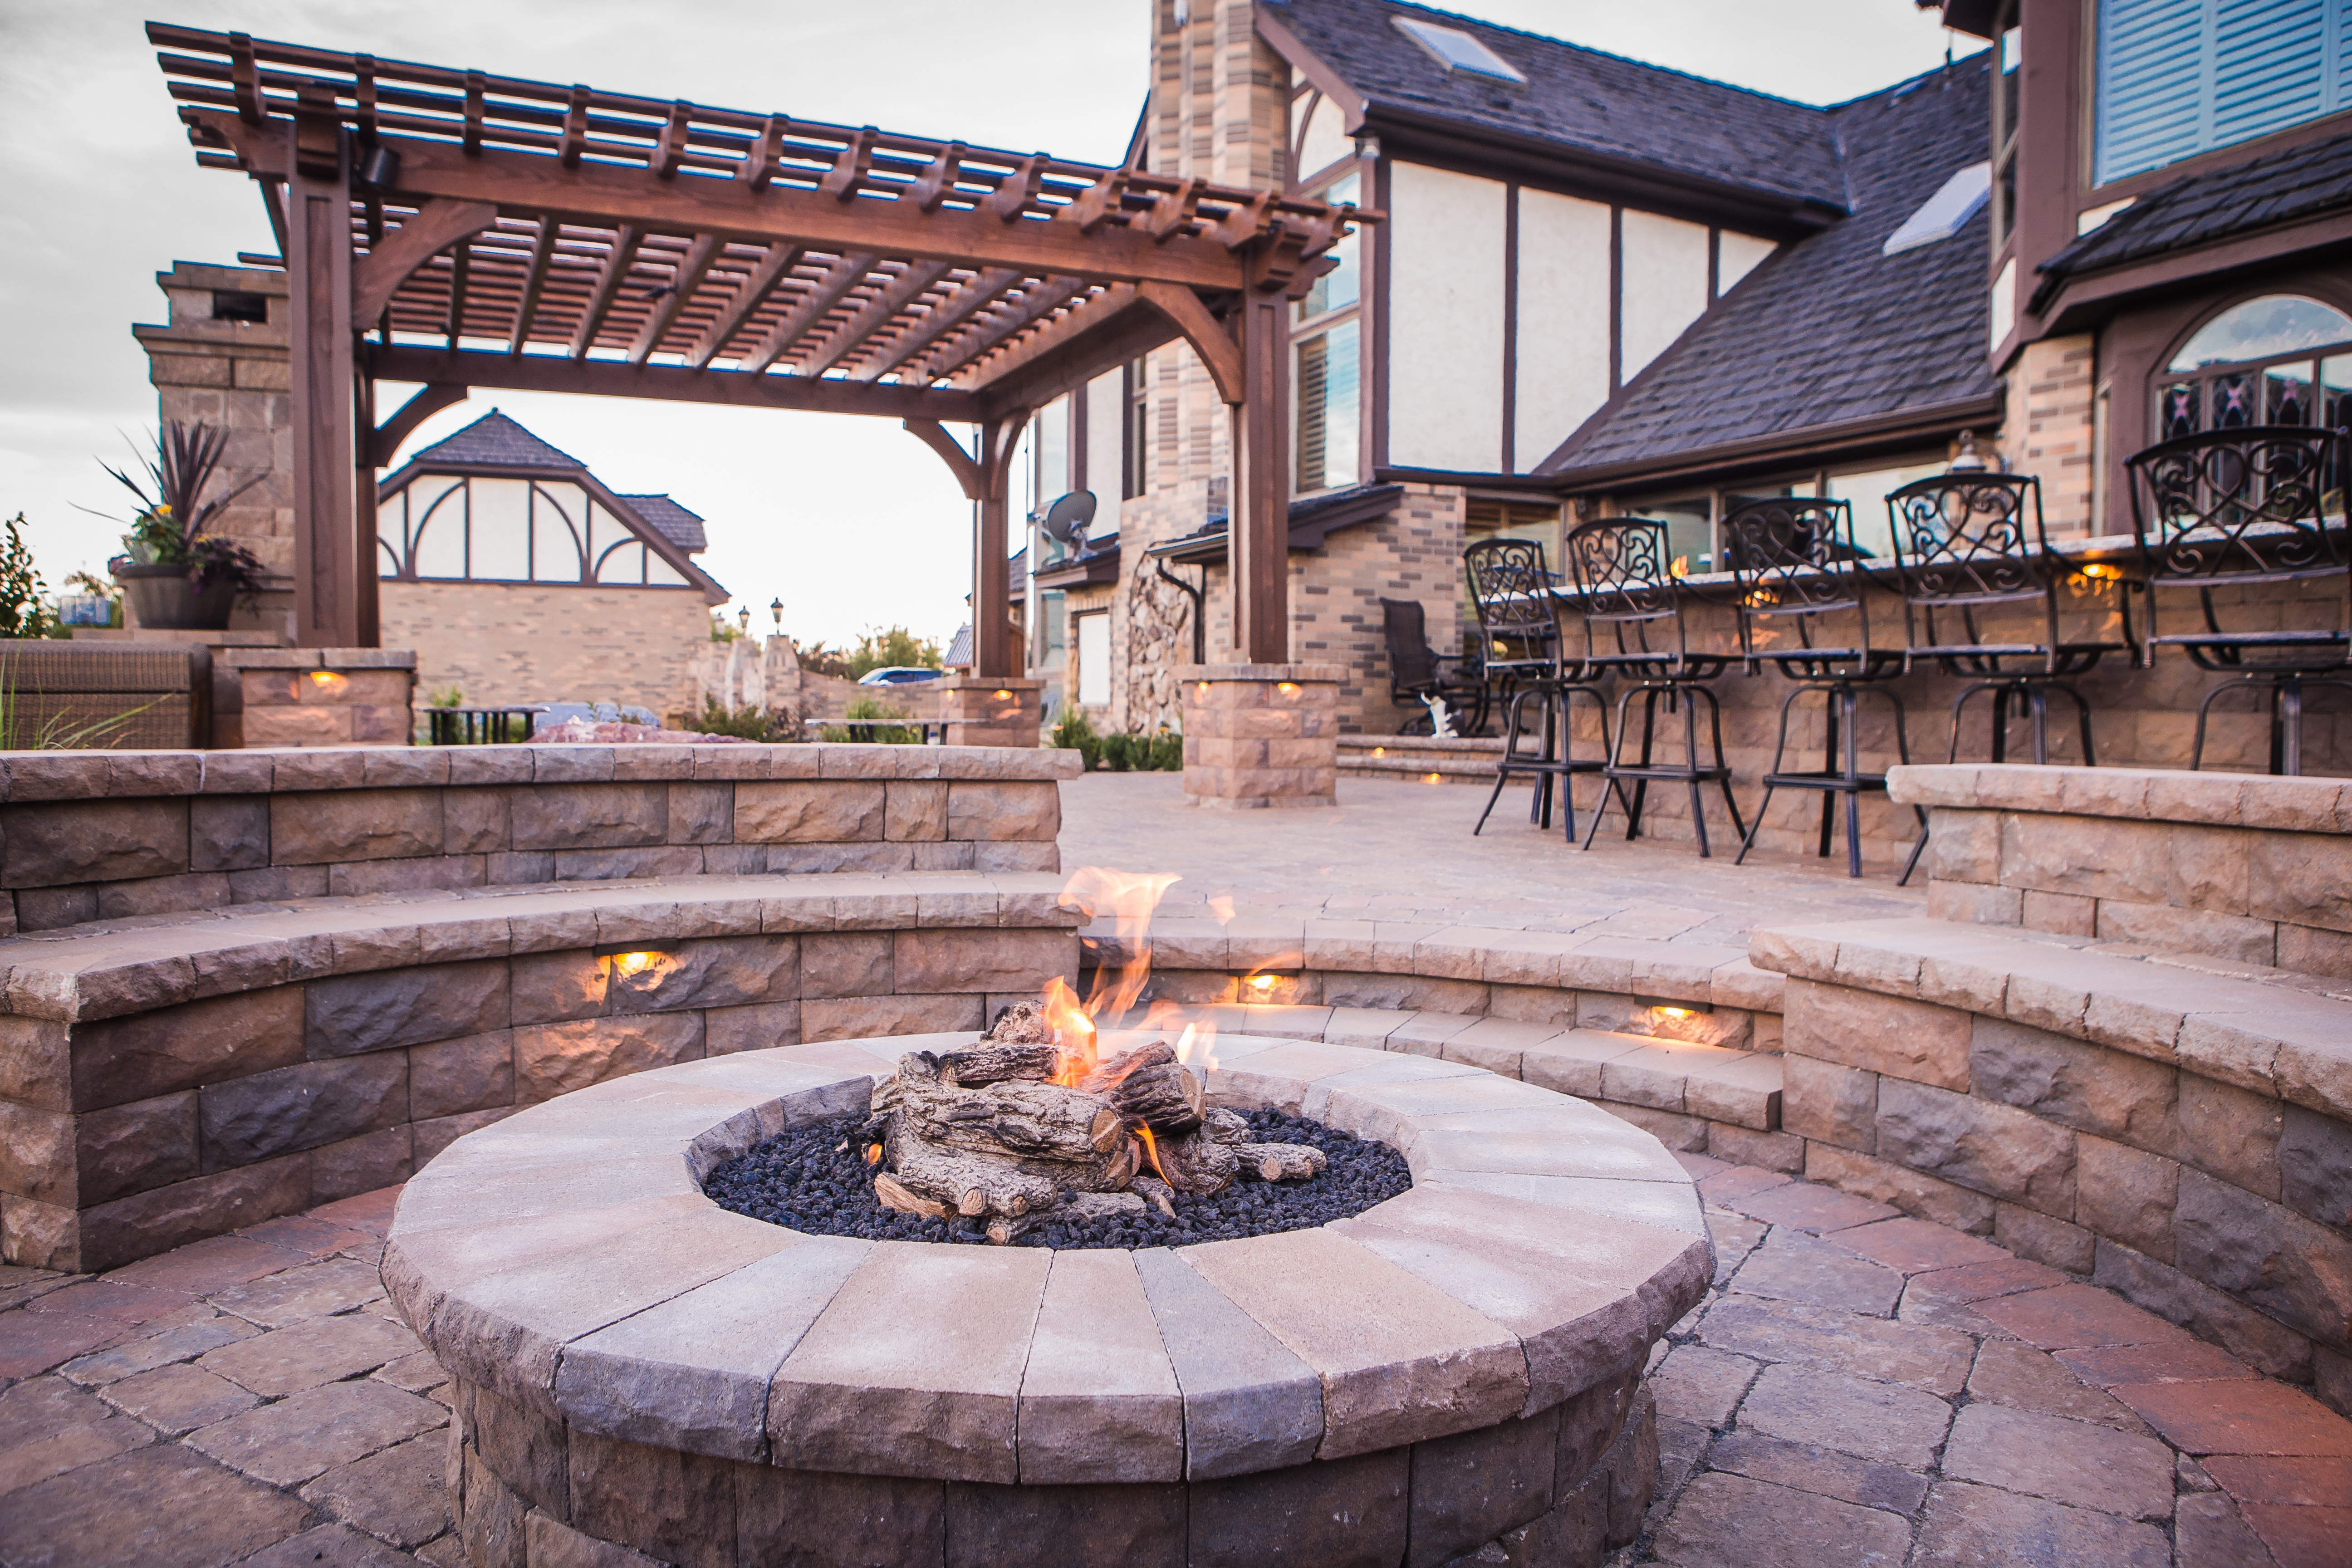 Backyard Fire Pits: The Ultimate Guide to Safe Design ... on Fireplace In Yard id=76491